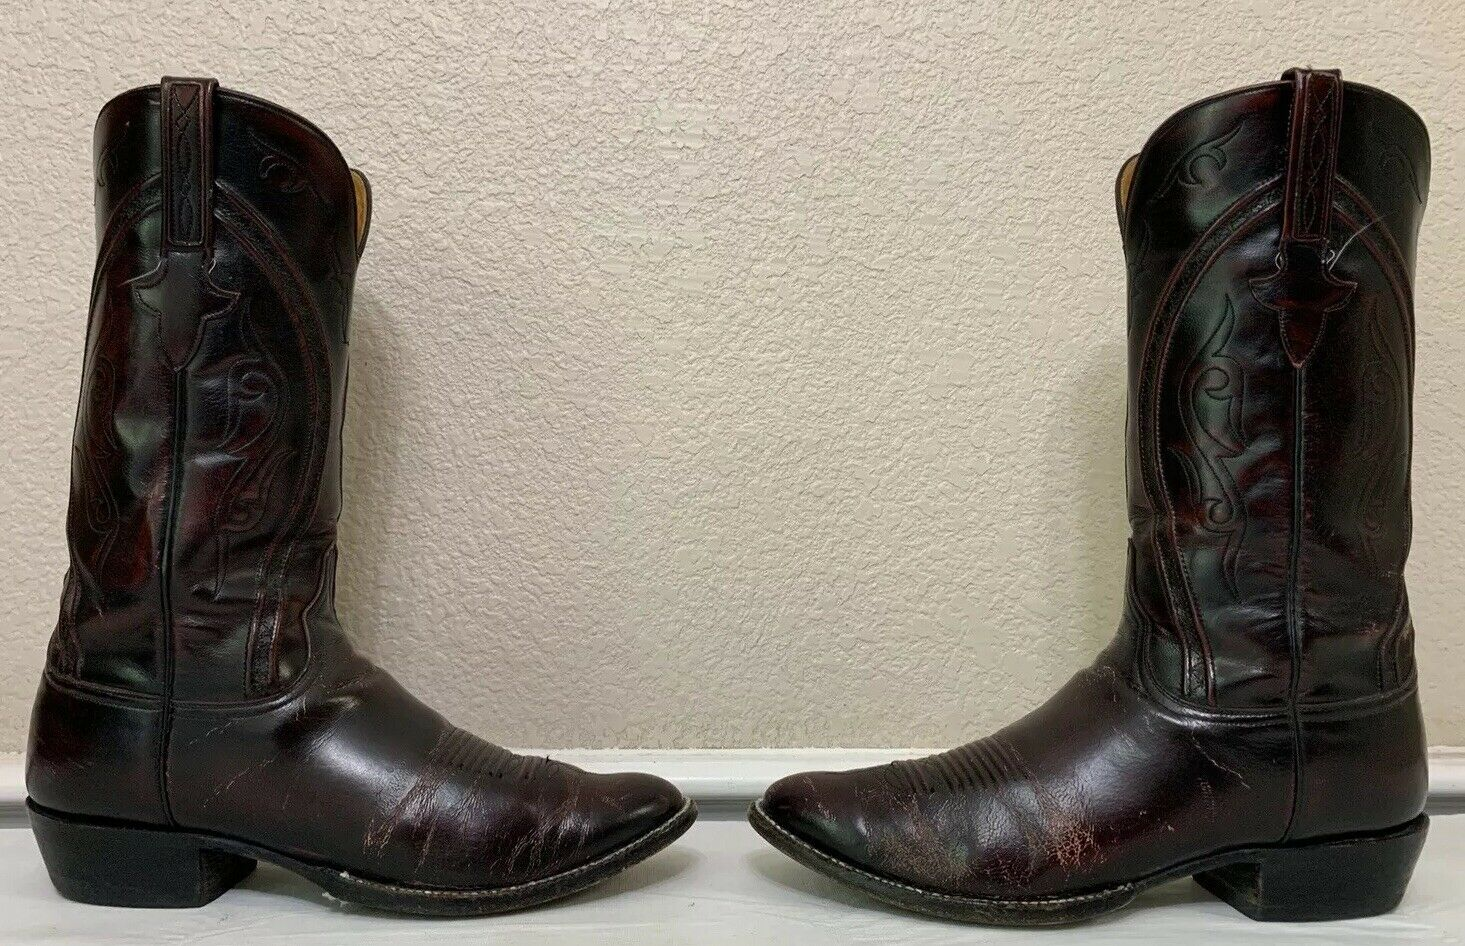 Lucchese Classics handmadecuir Bottes L0070 Noir CHERRY Taille 11.5 11 1 2